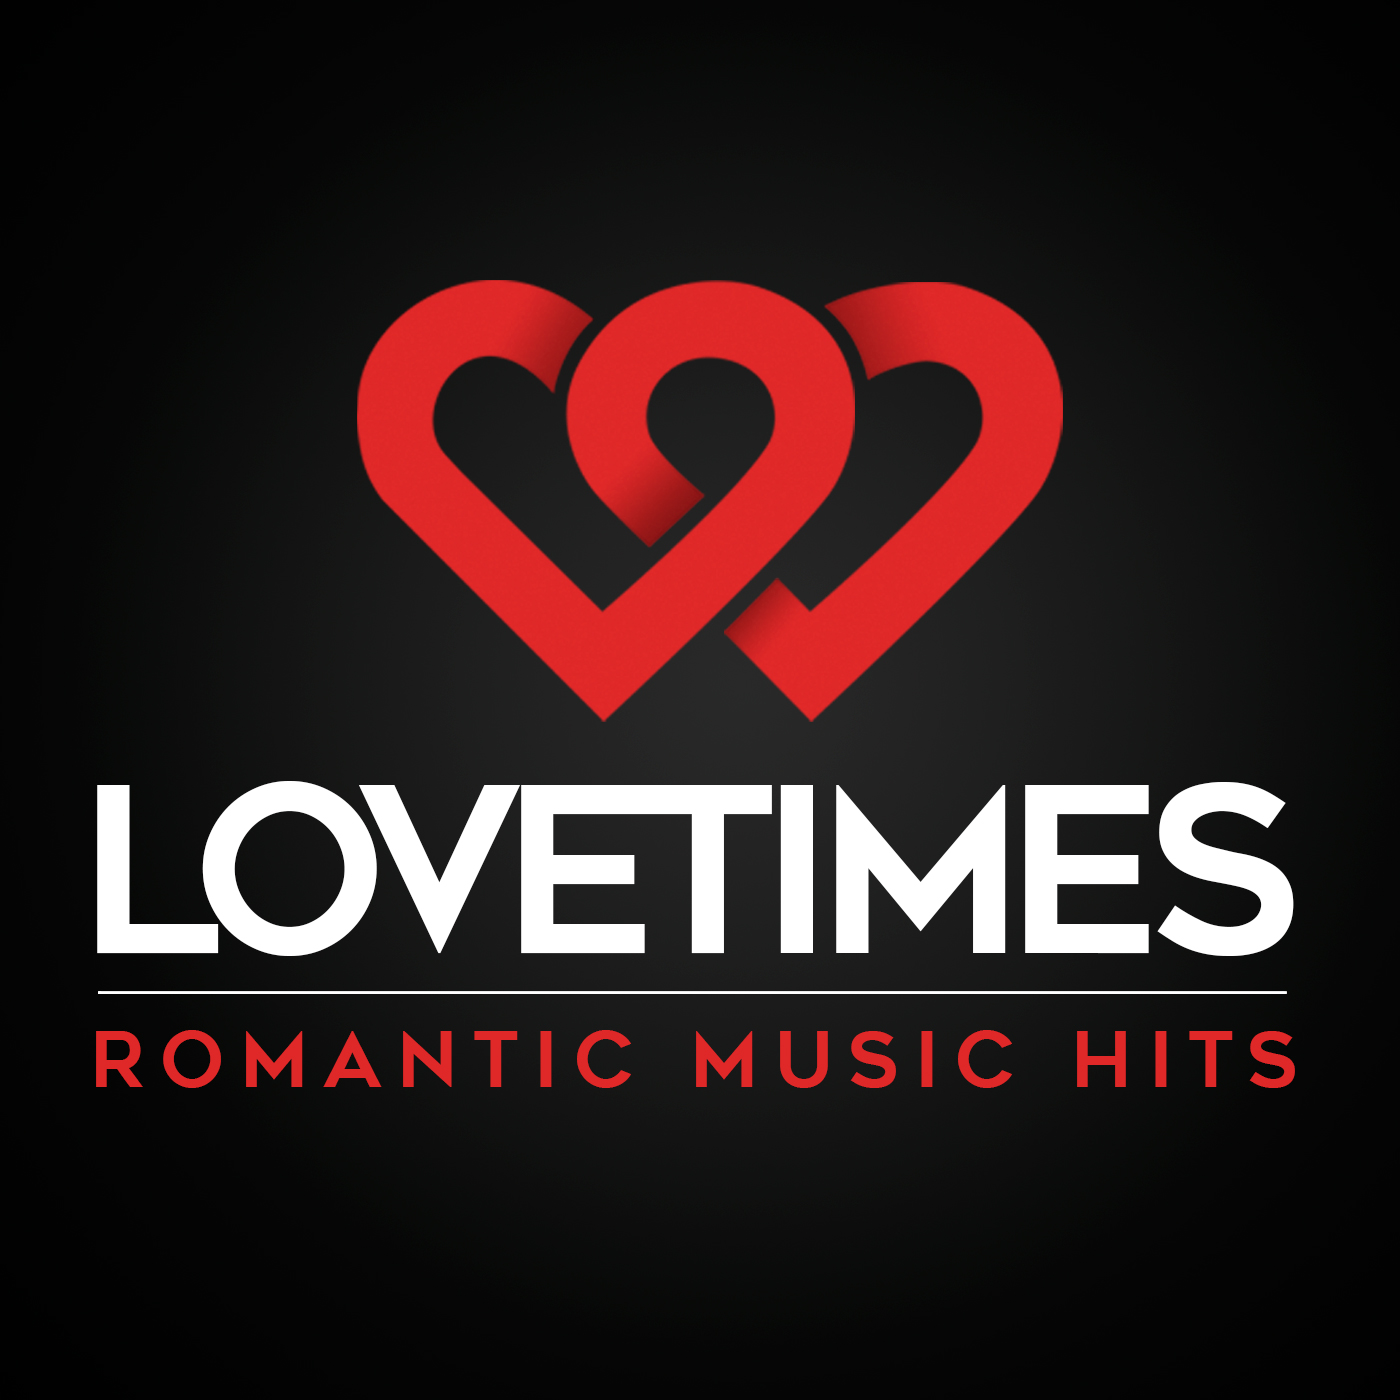 LOVETIMES | Romantic Music Hits (MP3)